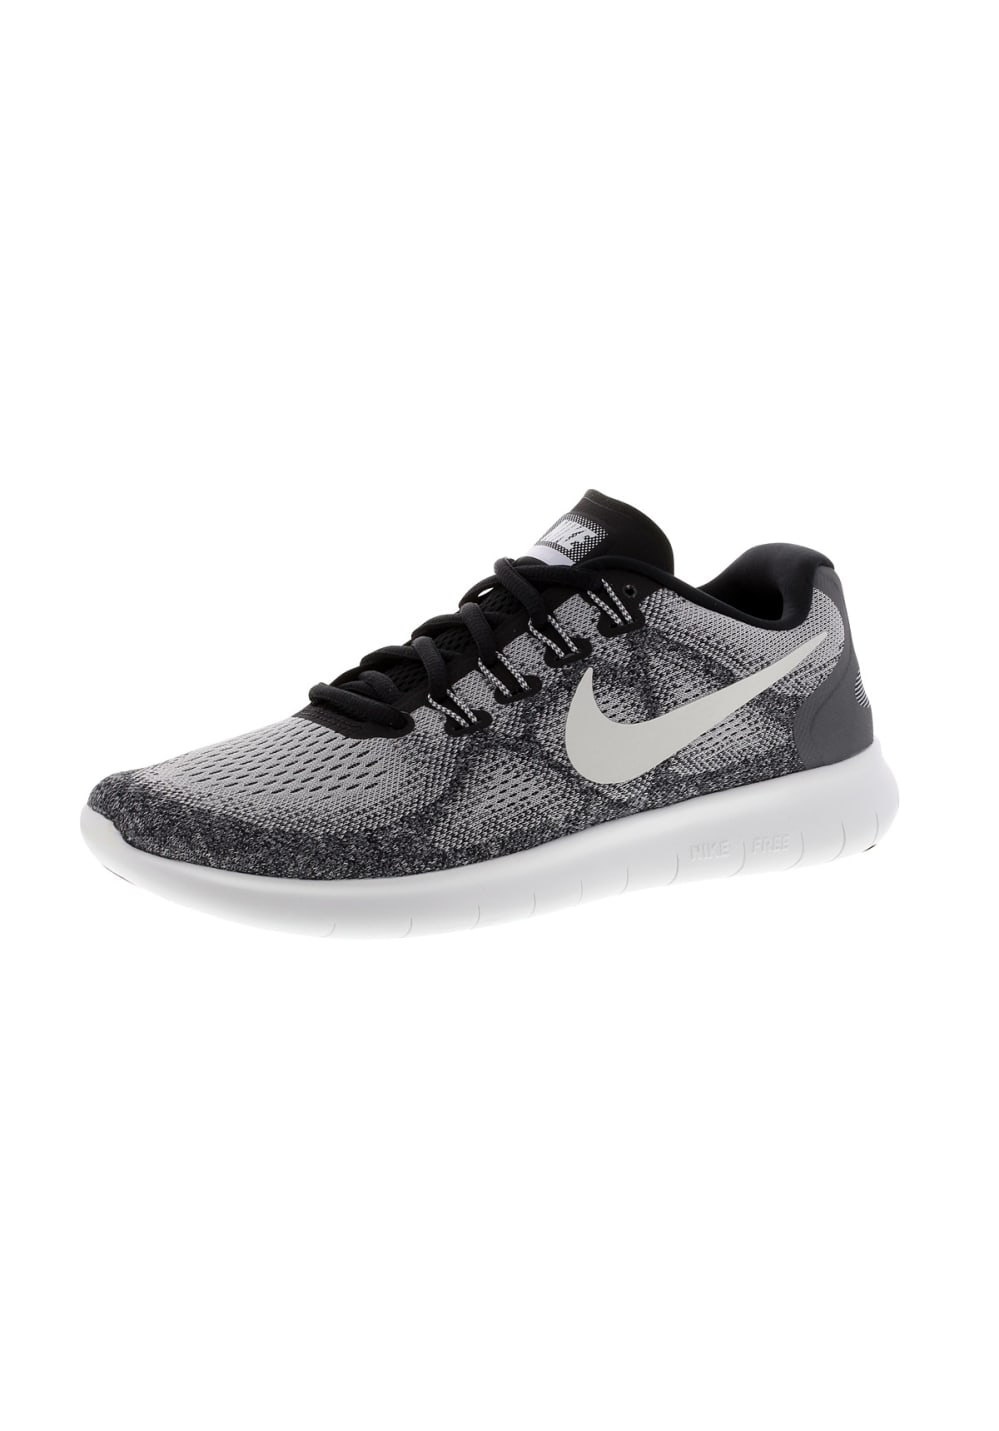 05eb41a68ac1 Next. -60%. Nike. Free RN 2017 - Running shoes for Women